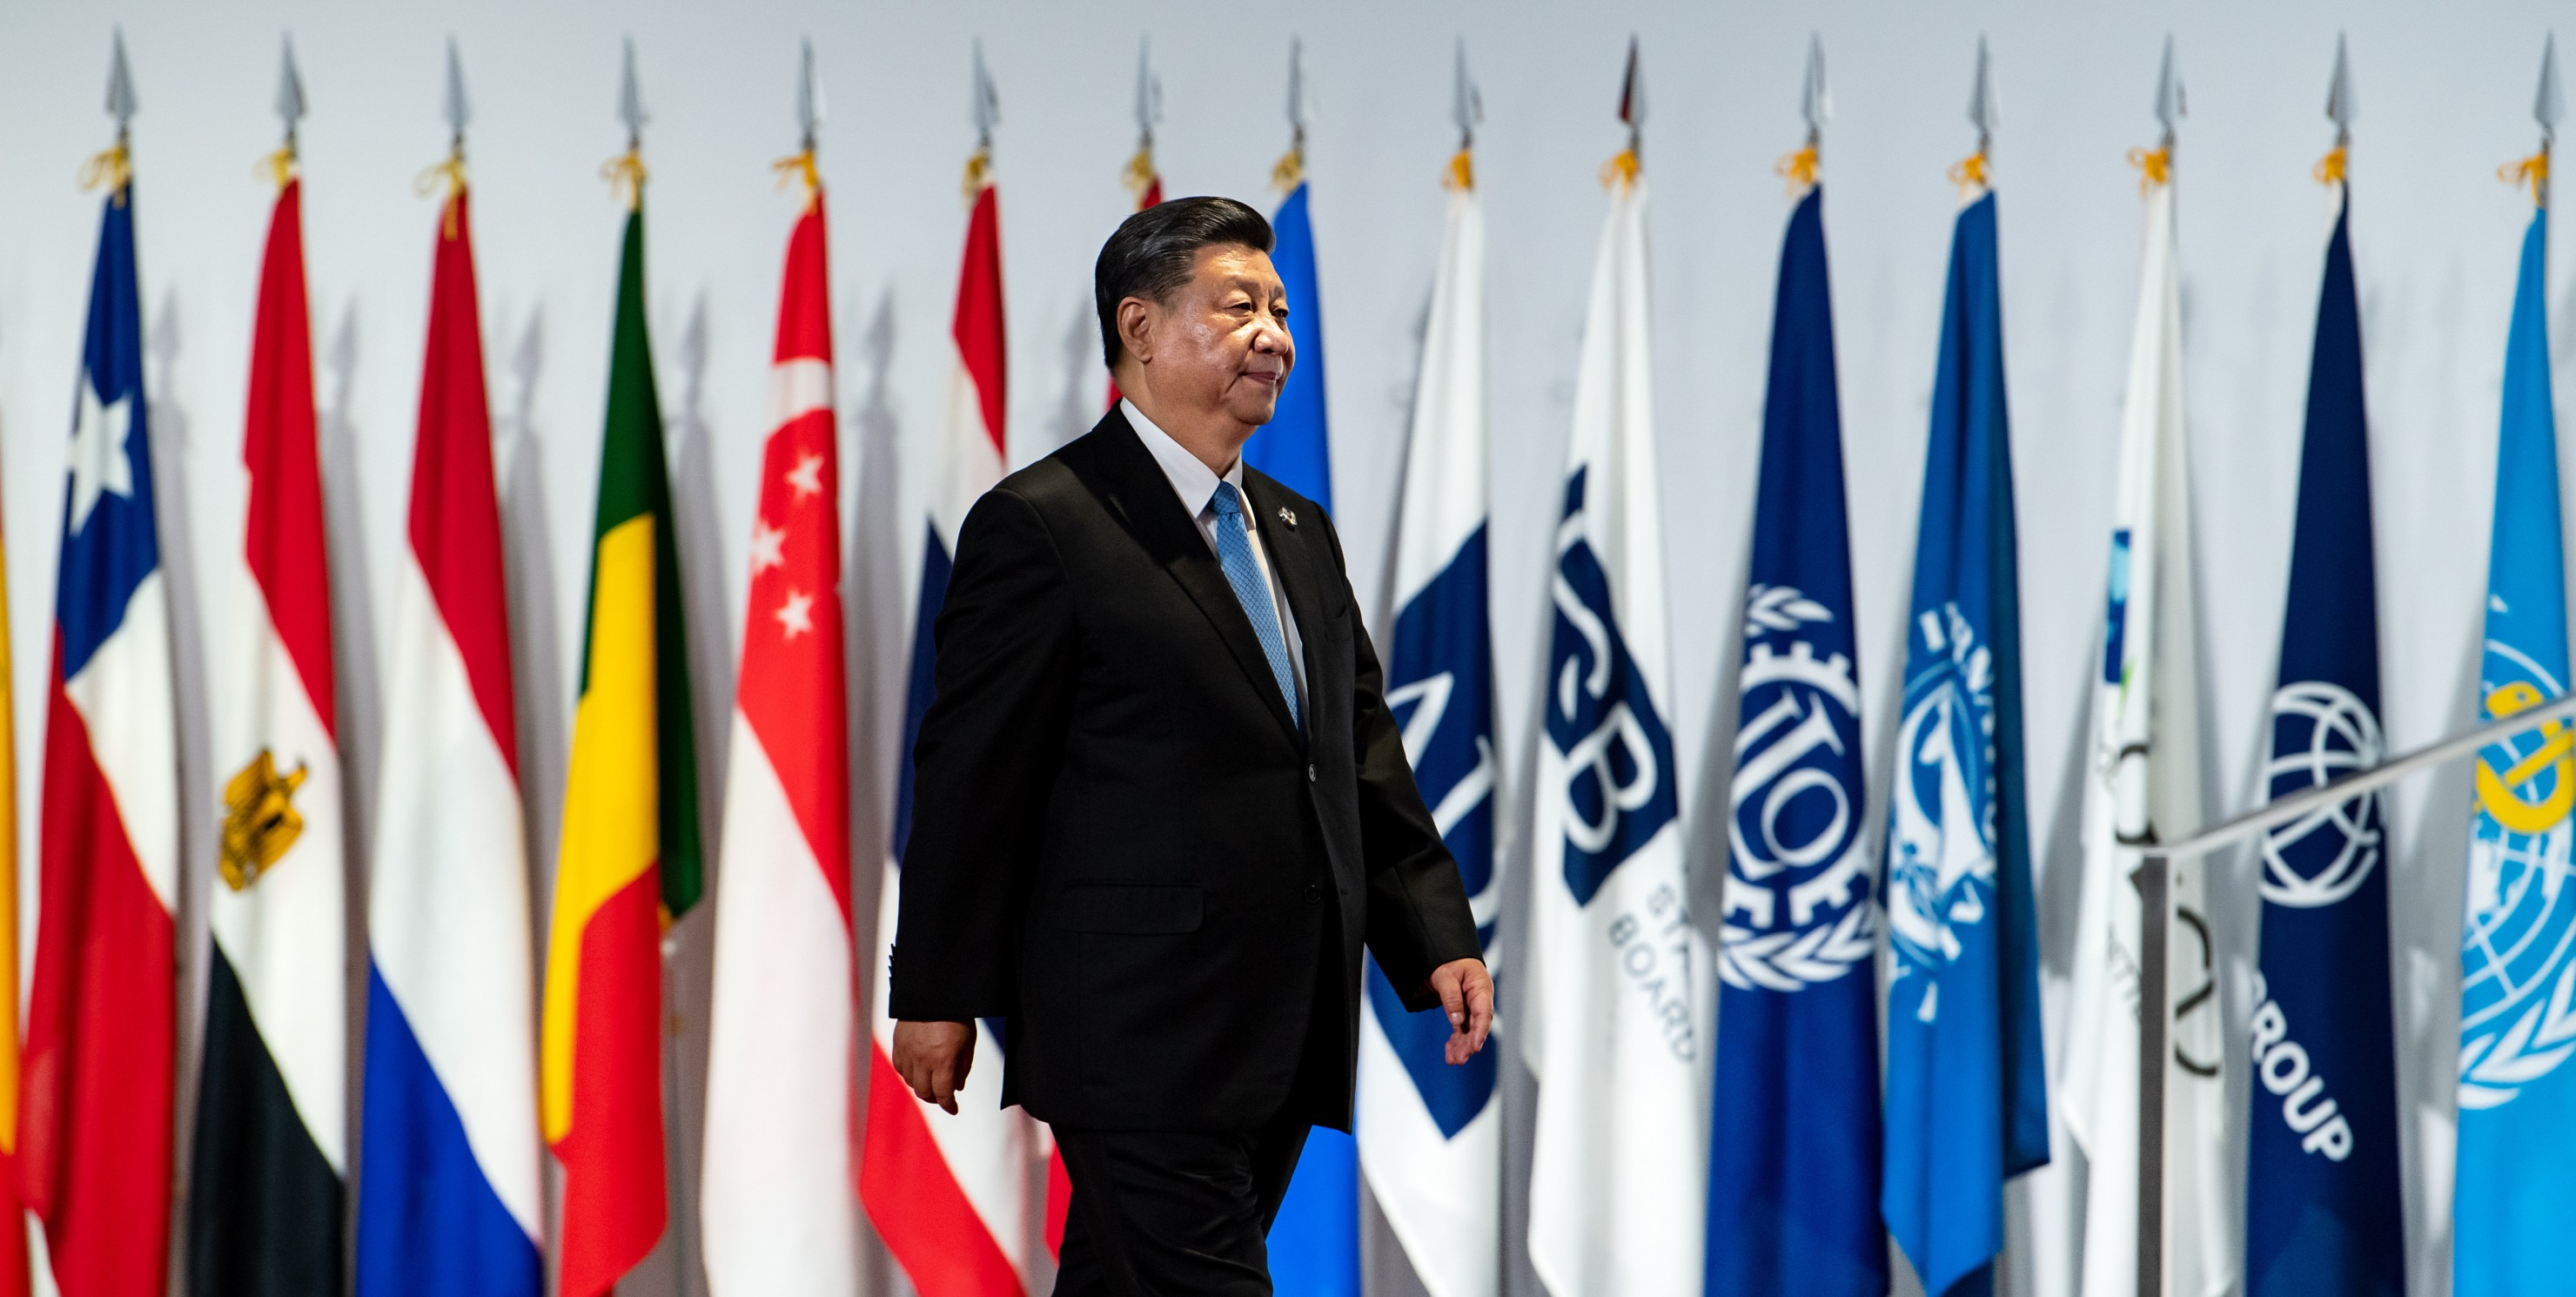 Xi Jinping walks to G20 Summit